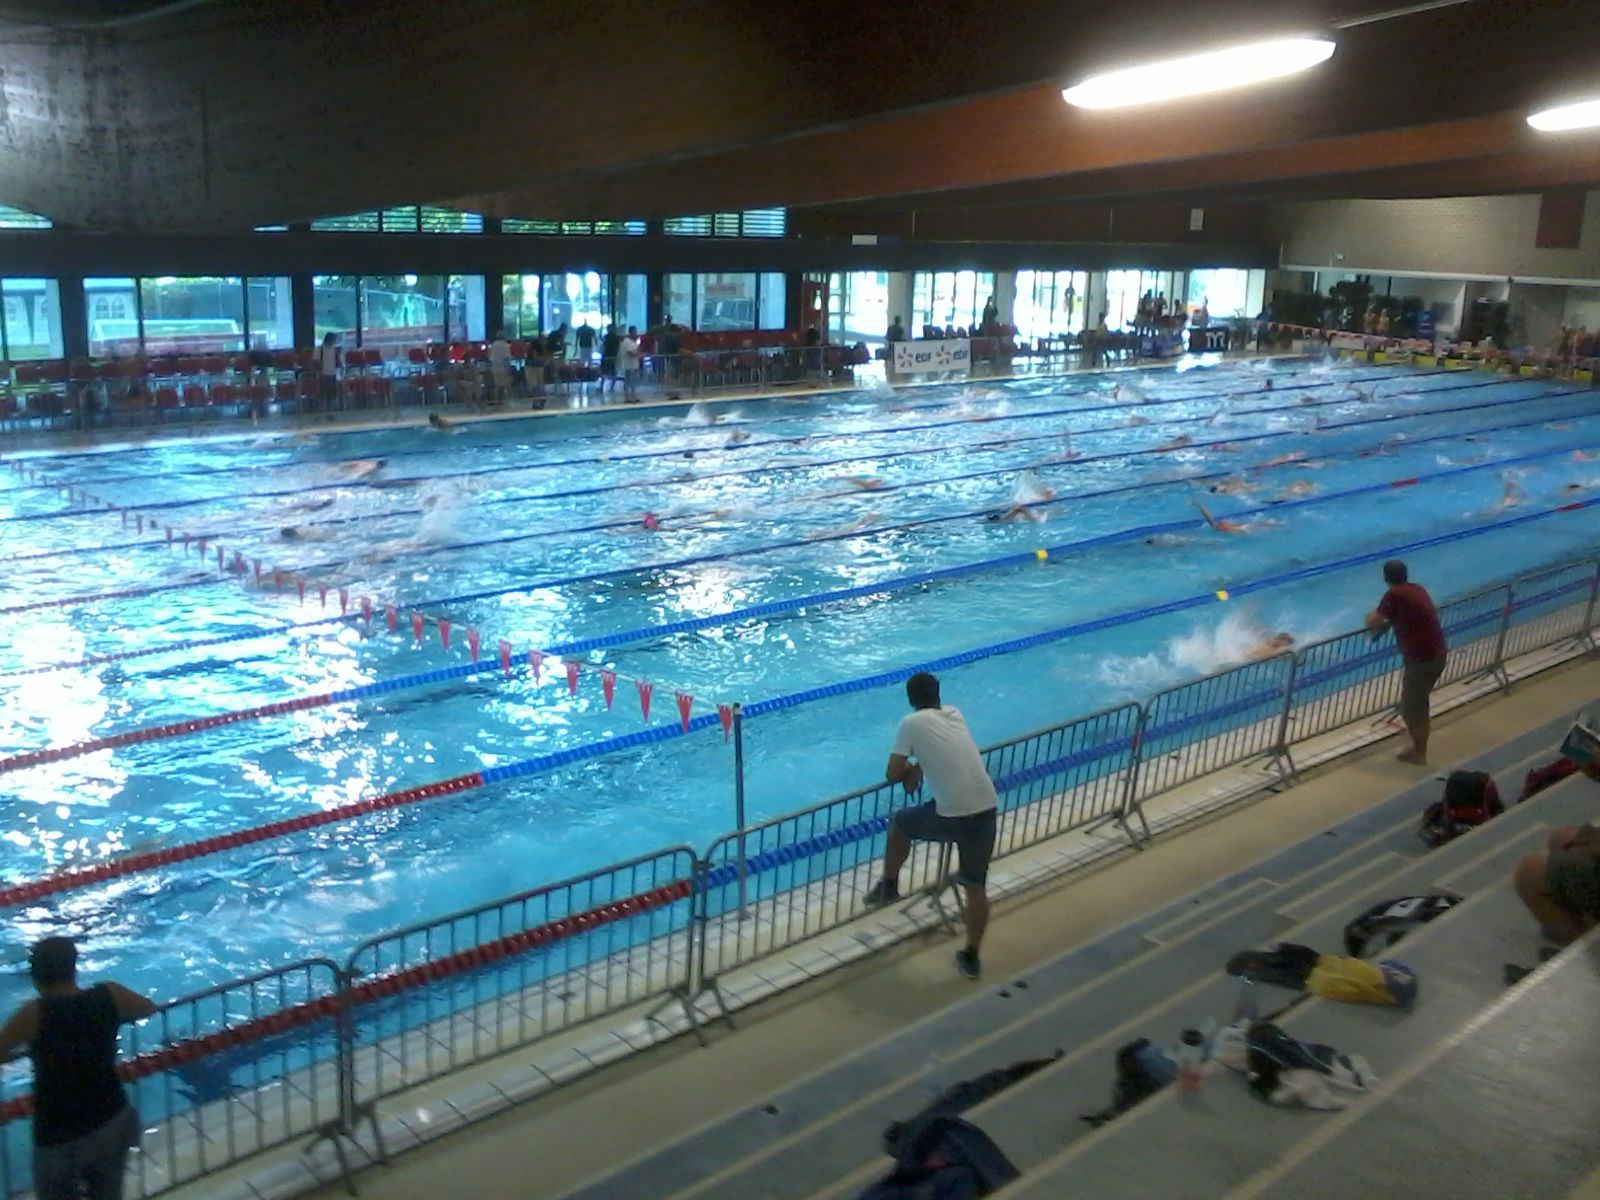 Championnats de france minimes le blog du clc natation for Piscine ile lacroix